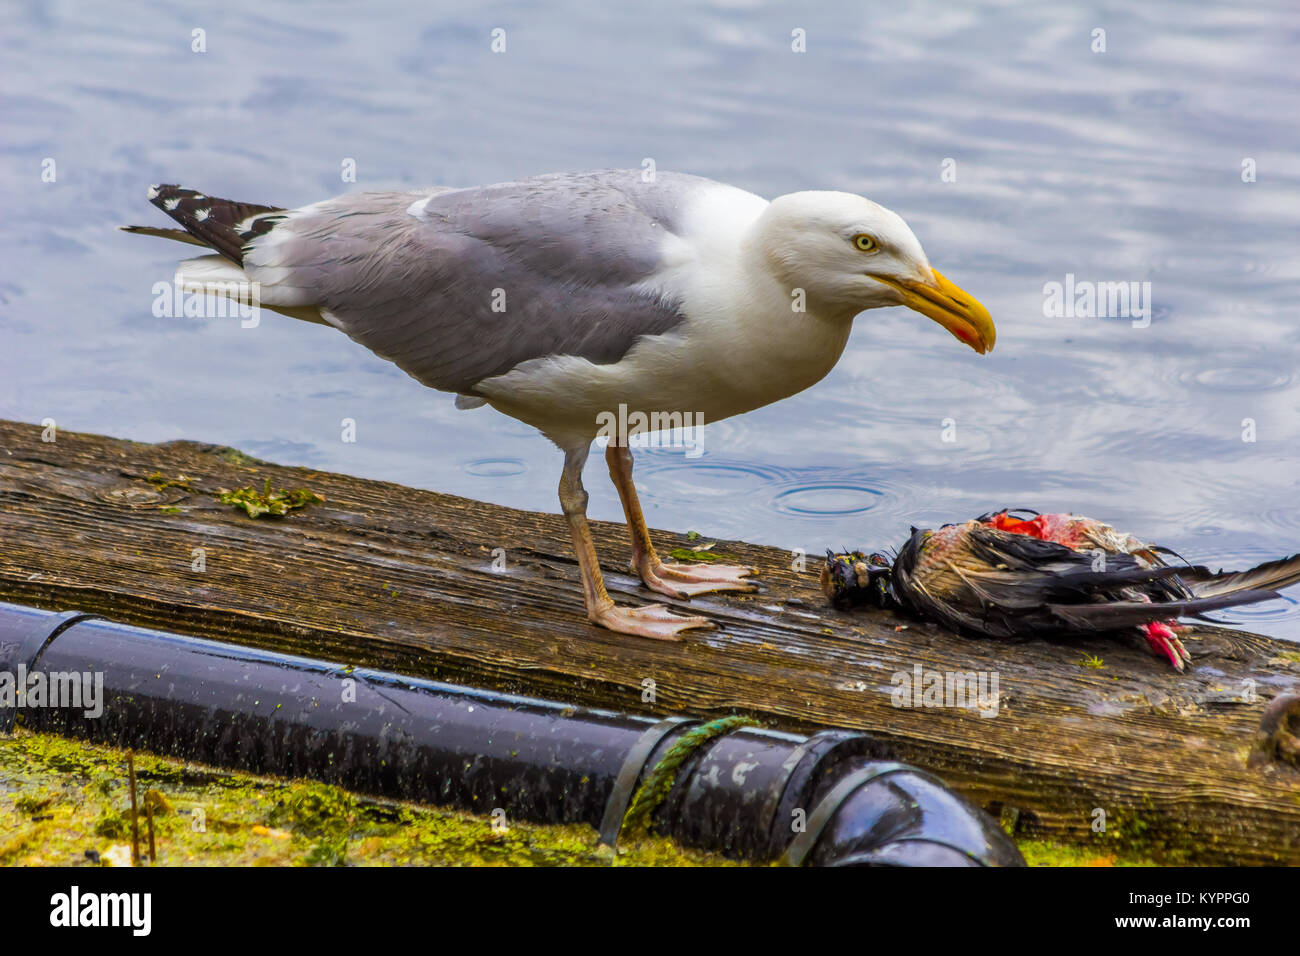 Seagull eating bird, Carnivore. Stock Photo